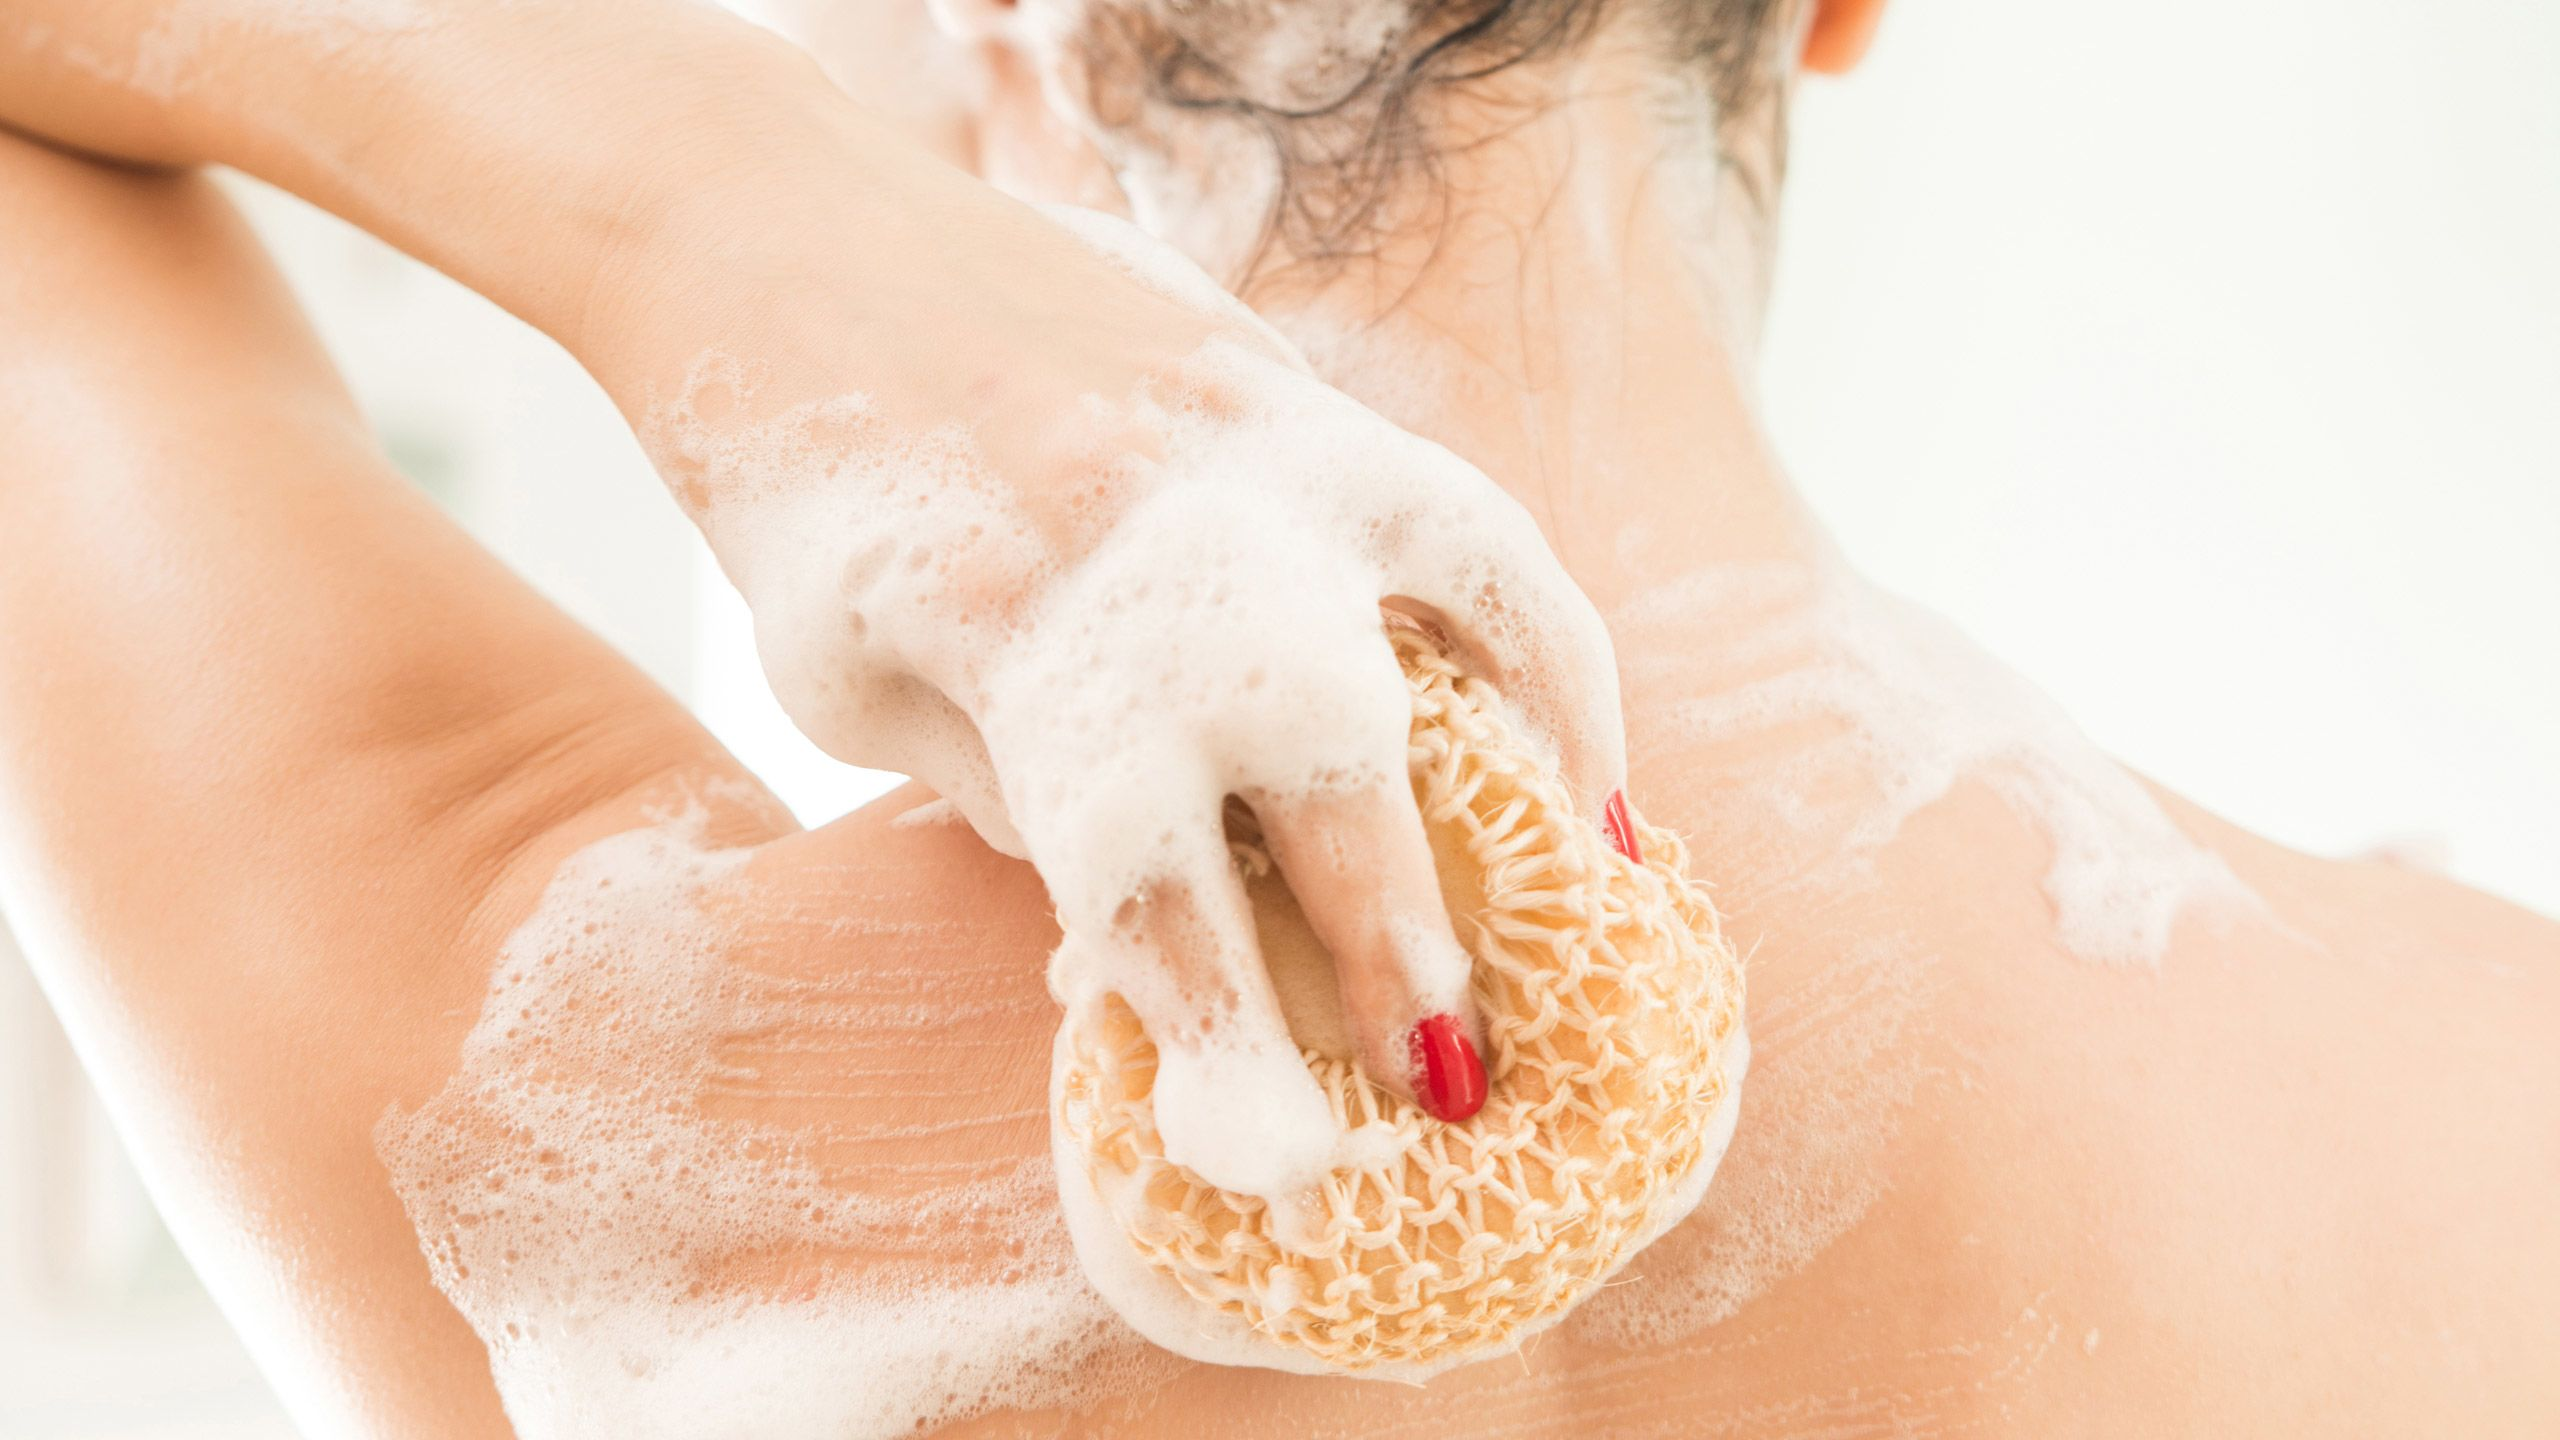 How to Pamper Your Most Neglected Body Parts